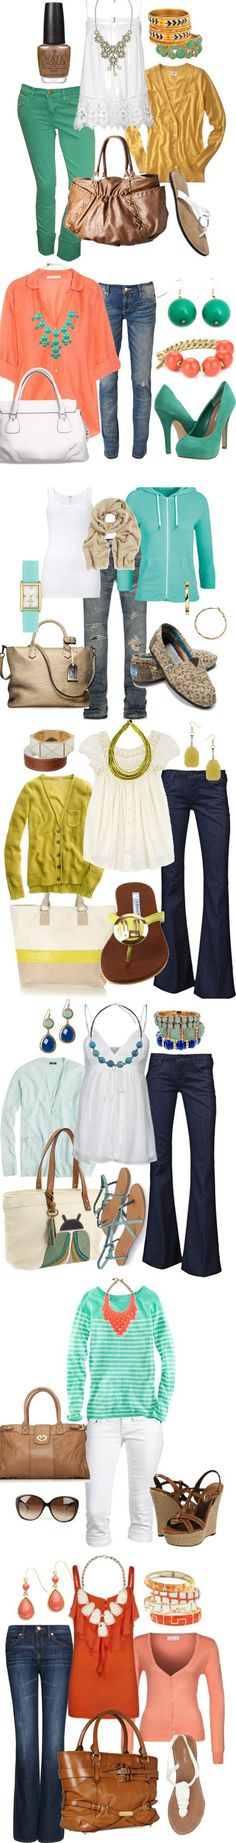 STILL LOVE THESE COLORS!!!!        Pastels Spring Fashion 2013 at www.honeybearlane.com #spring #fashion